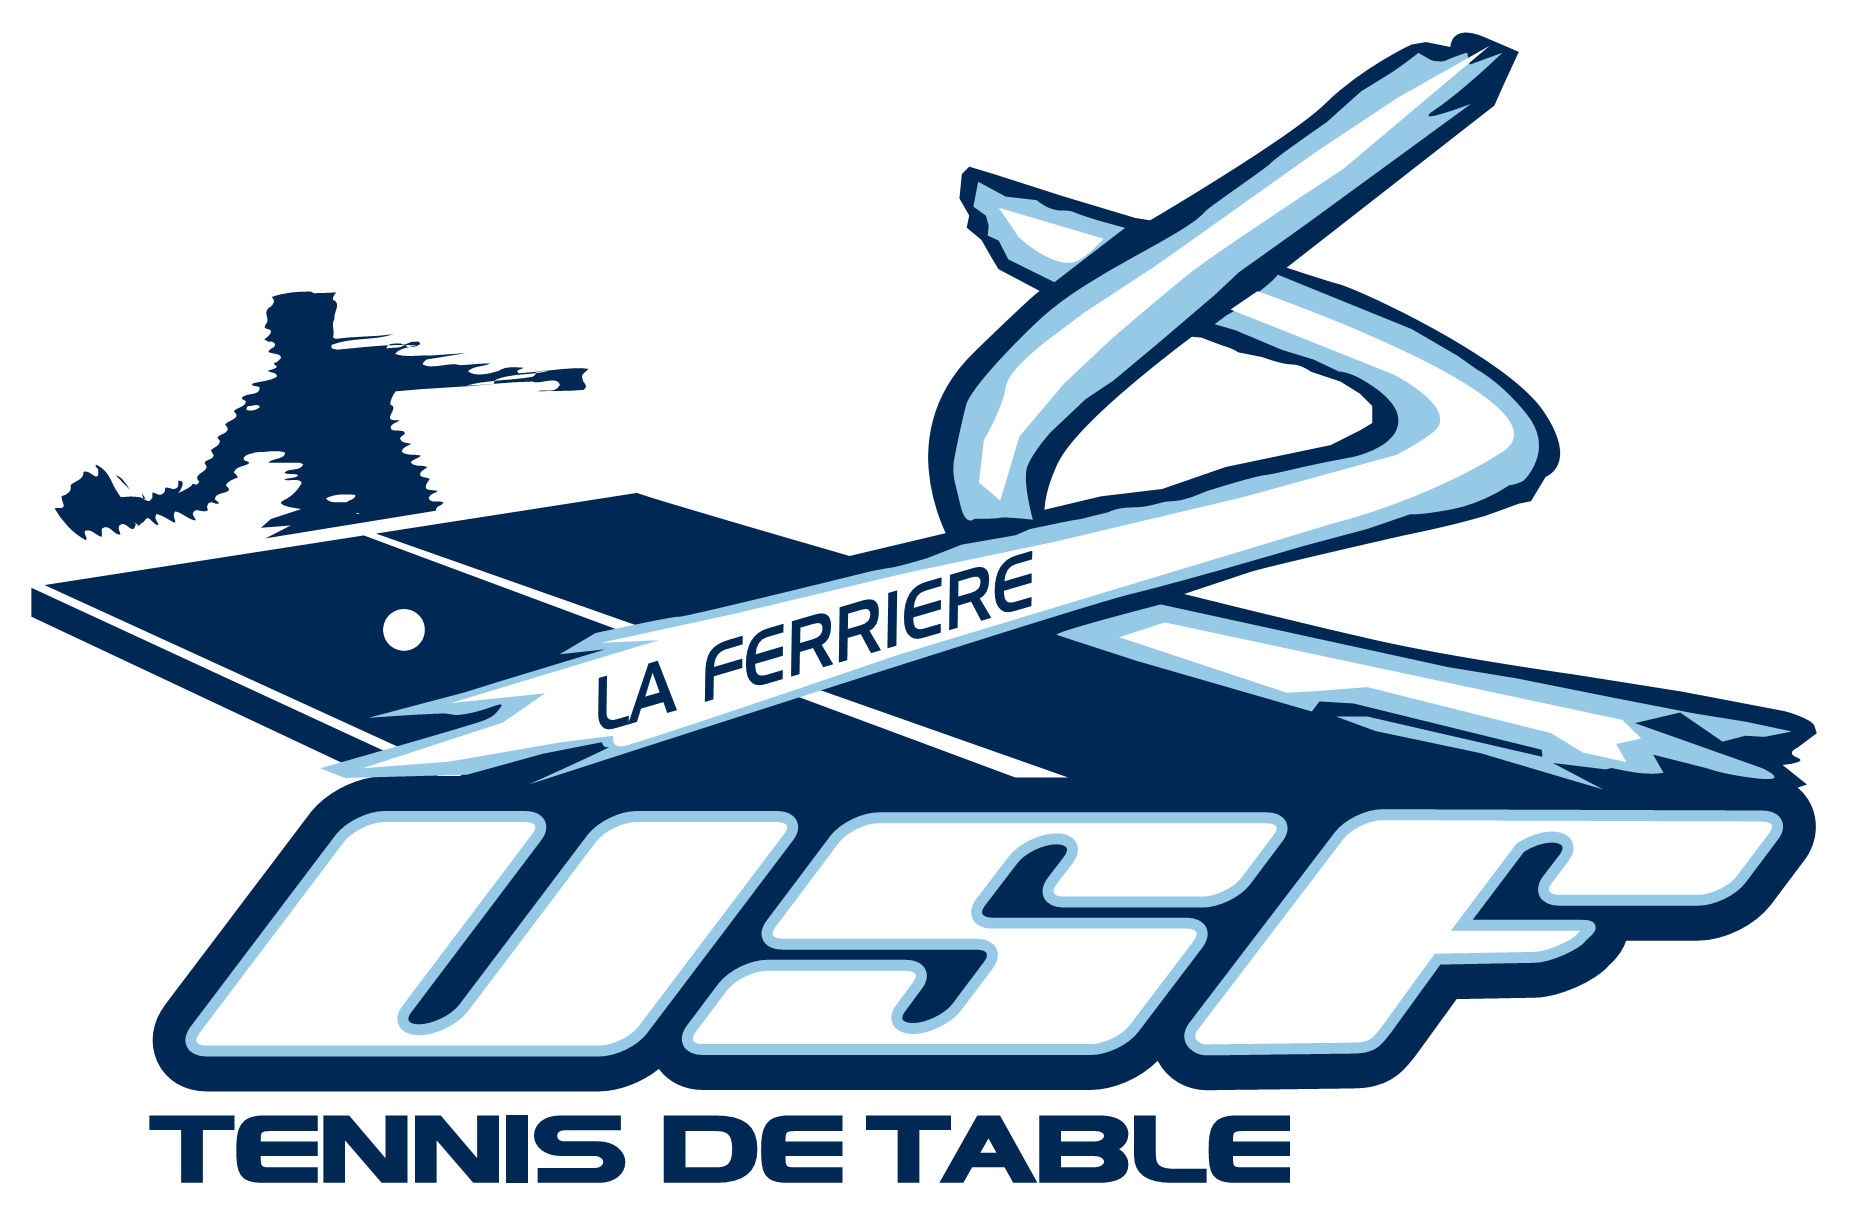 Us la ferri re vend e tennis de table - Classement individuel tennis de table ...